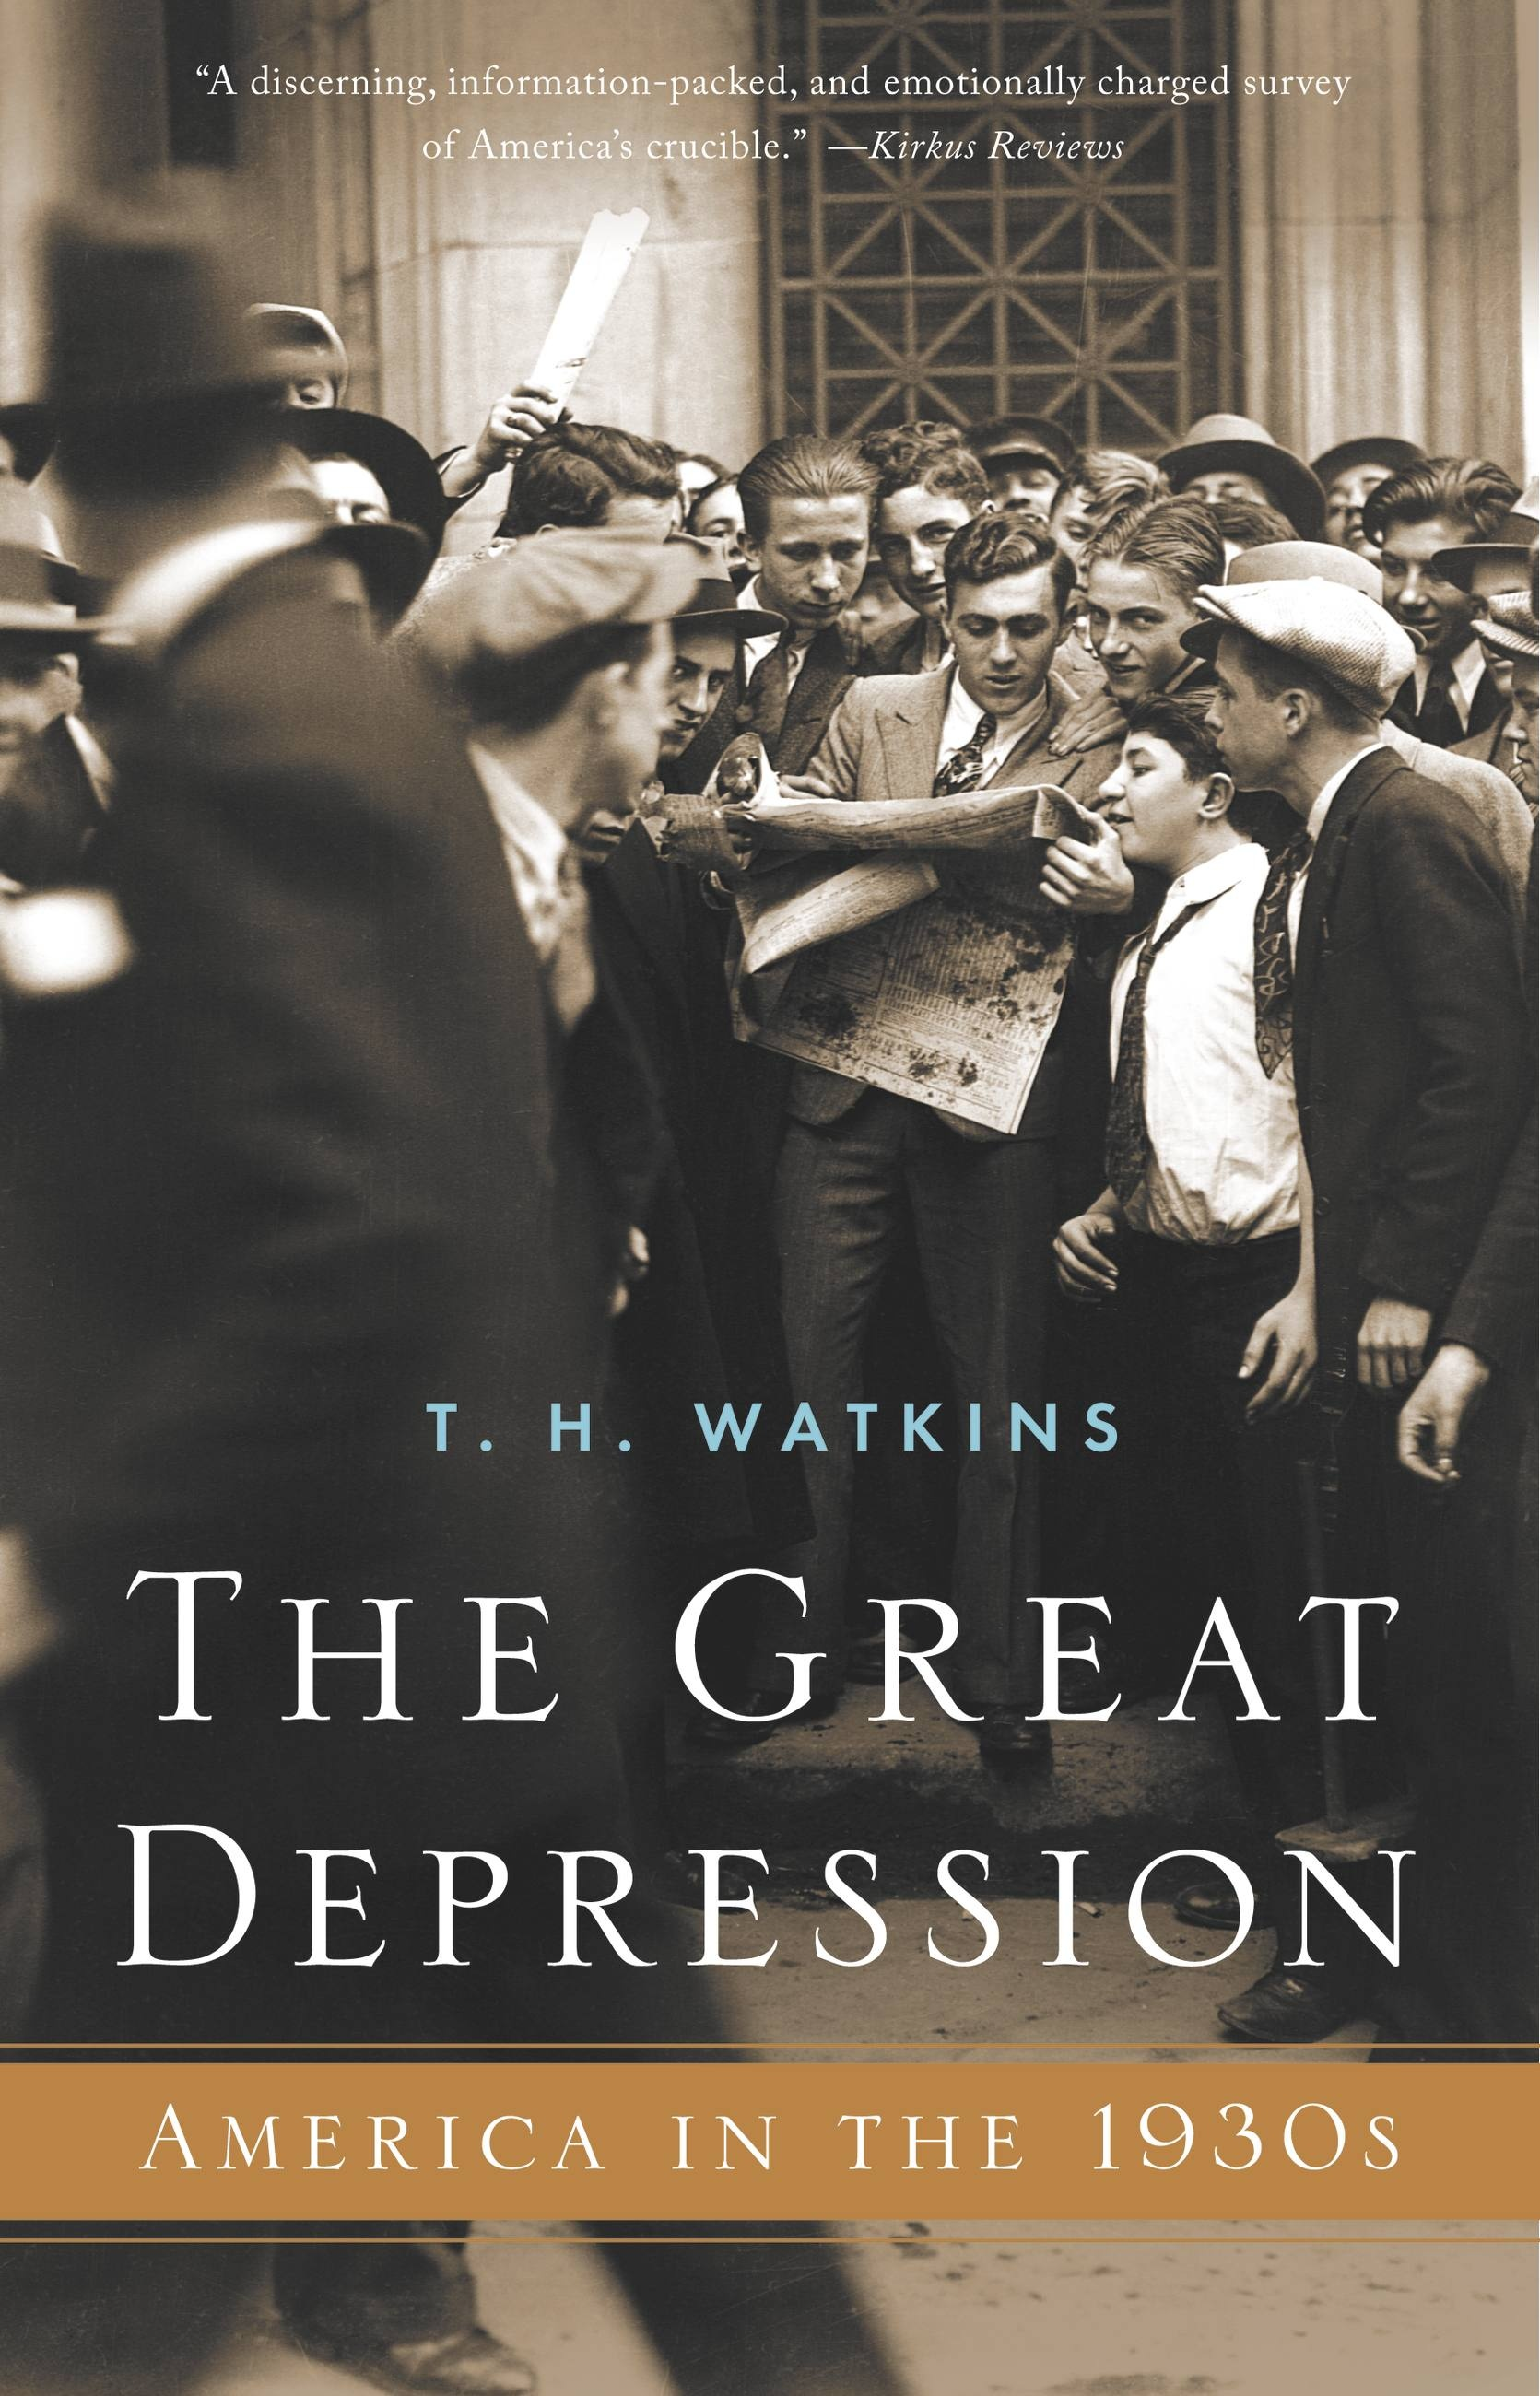 book review the great depression Kirkus review a once-over-lightly canvass that represents a far-from-rigorous inquiry into the deeply troubled decade which ended with the onset of ww ii in 10 loosely linked essays, garraty surveys the socioeconomic upheaval that followed in the wake of wall street's 1929 crash.